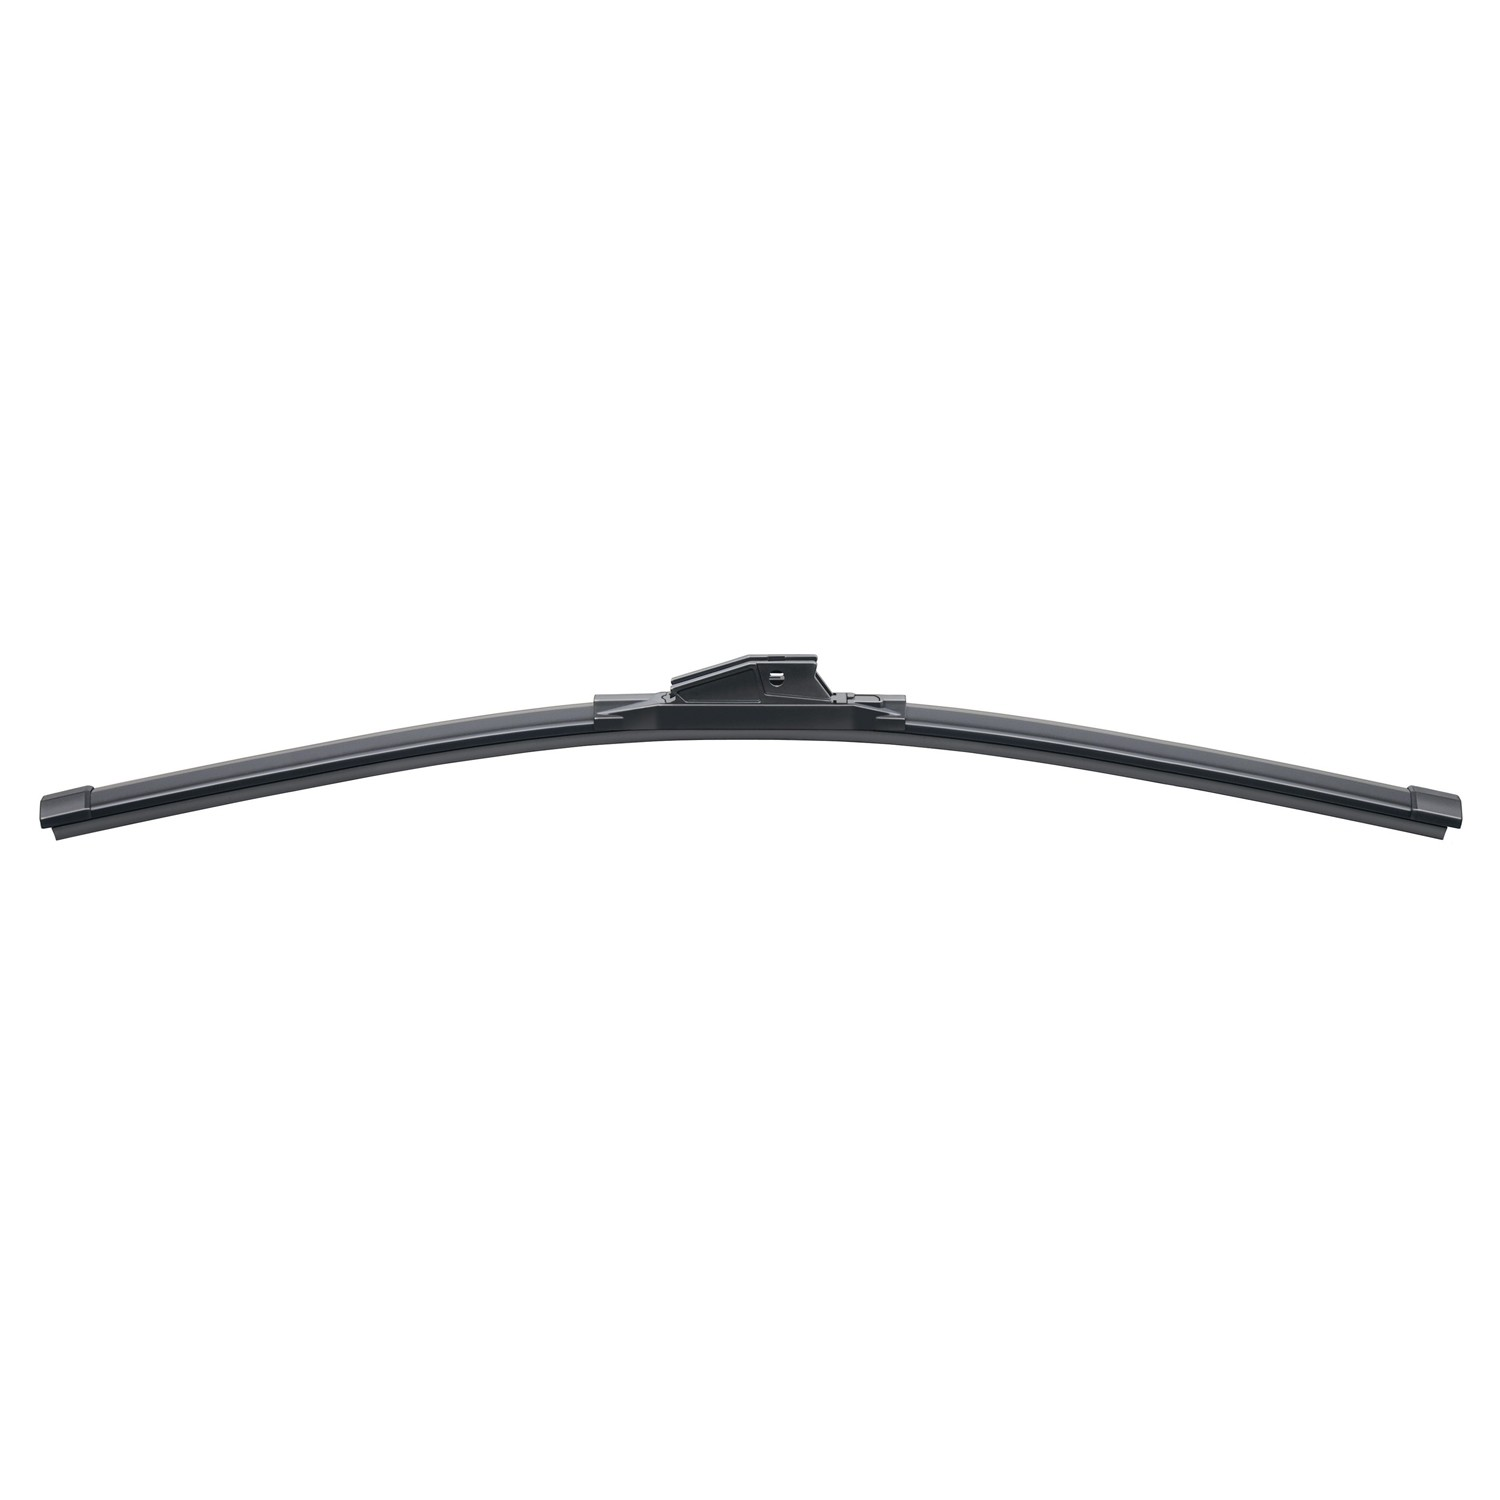 ACDELCO SPECIALTY - Winter Beam Blade - DCE 8-3324